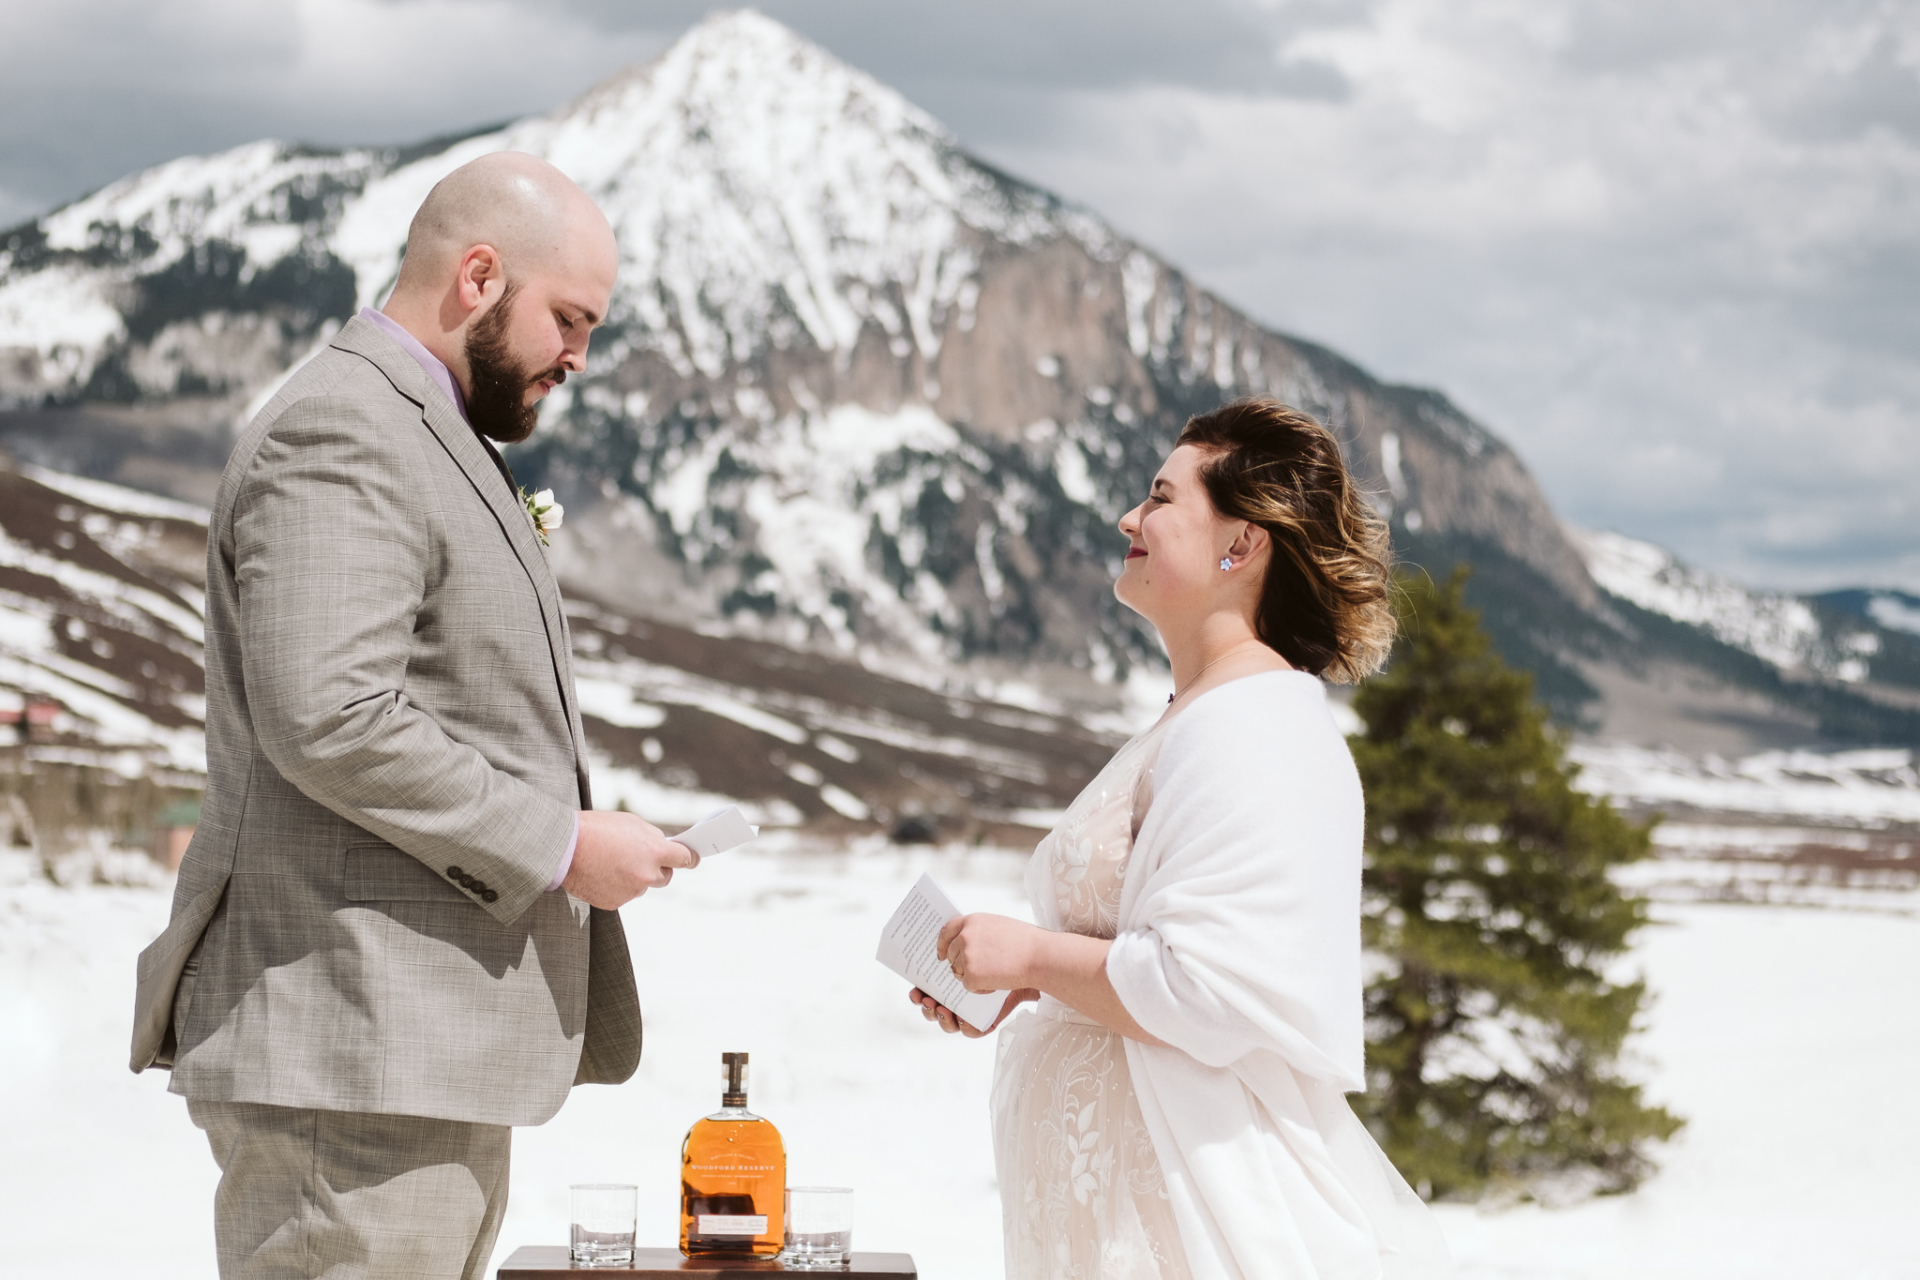 Colorado Elopement Ceremony Photo from Crested Butte | Bride and groom self-solemnize their elopement in Colorado, without an officiant - but with a good bottle of whiskey